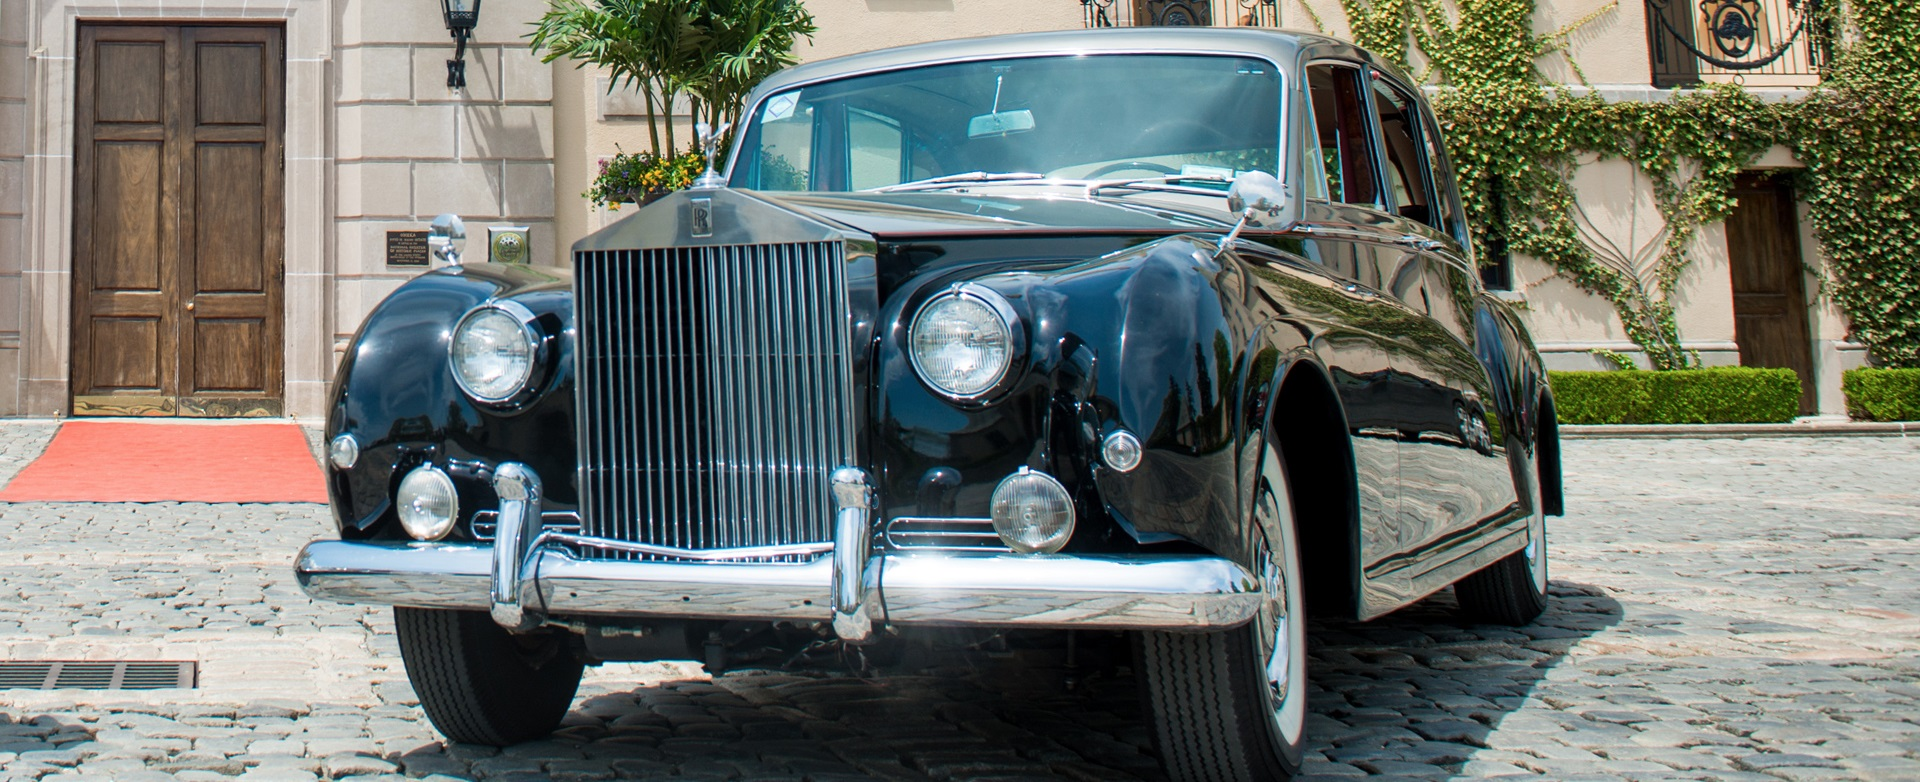 1962 Vintage Rolls Royce Phantom V Limo <span style='font-size:15px;'>James Young Edition</span>